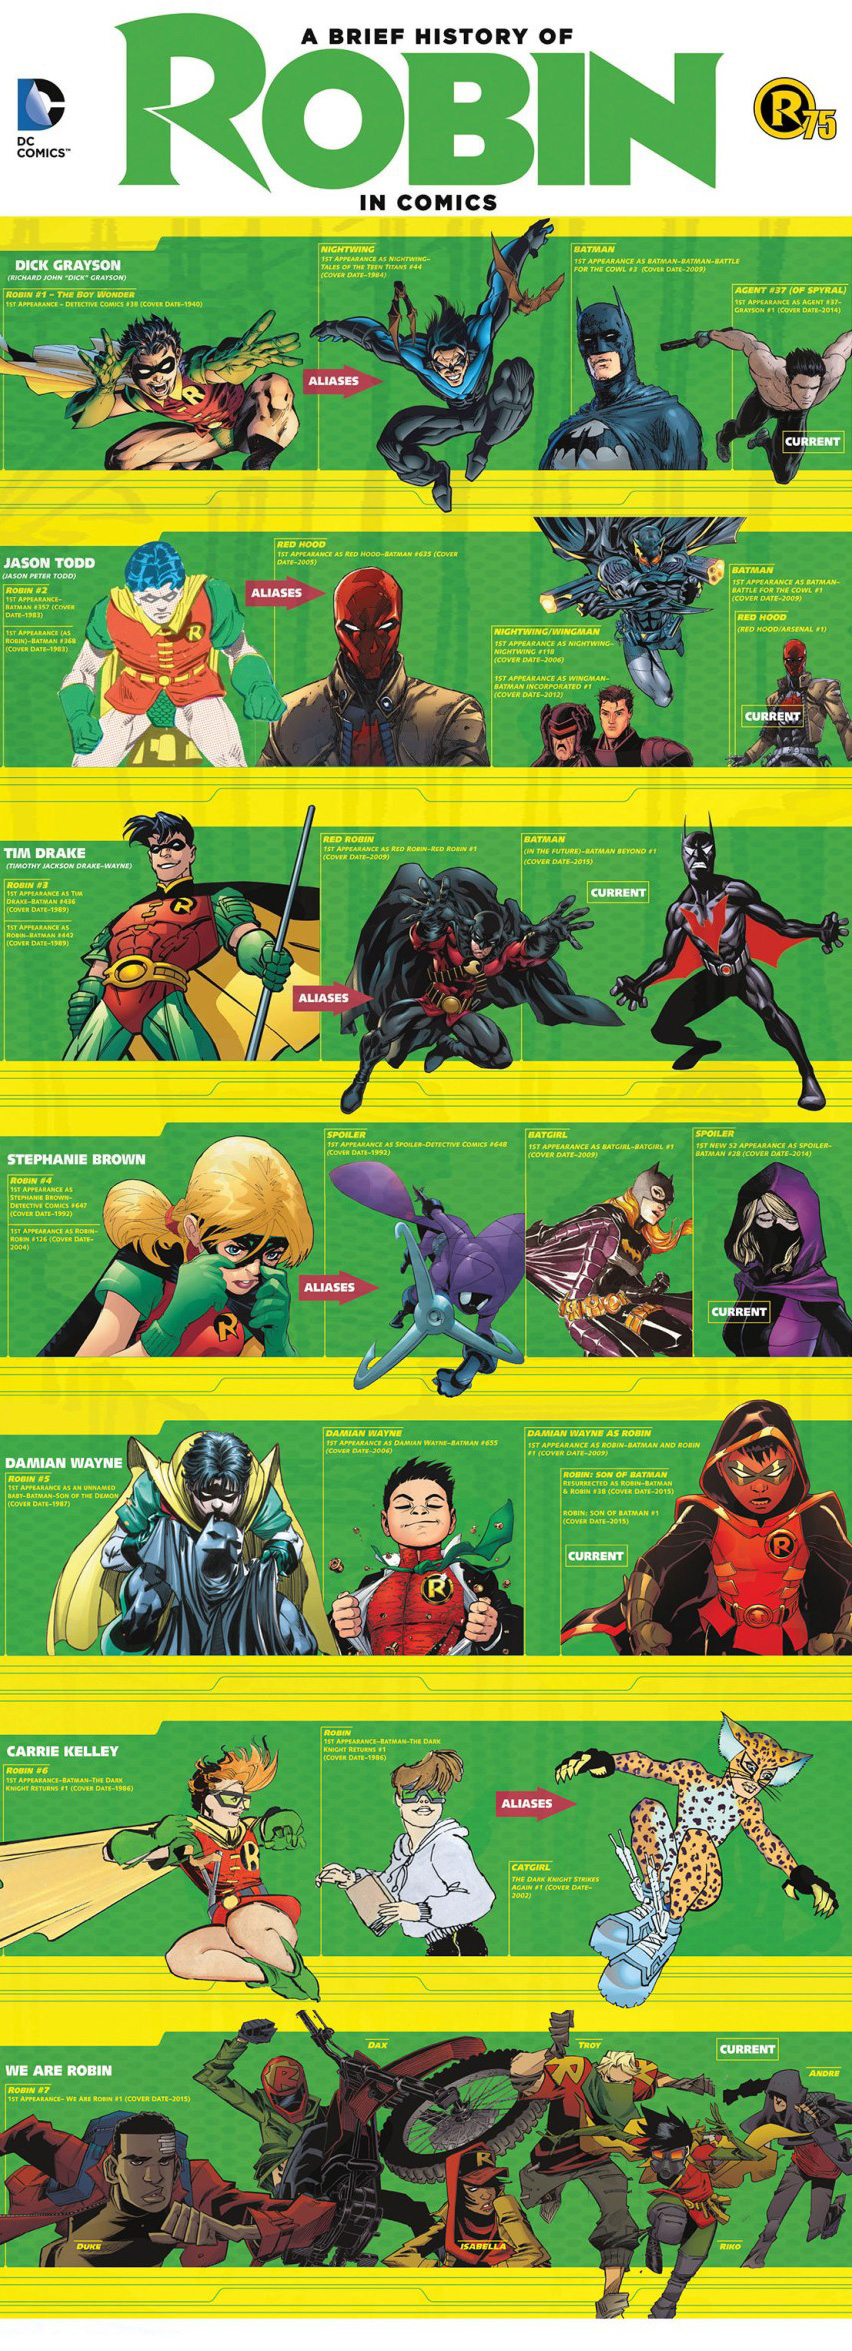 Evolution-of-Robin-in-Comics-Infographic